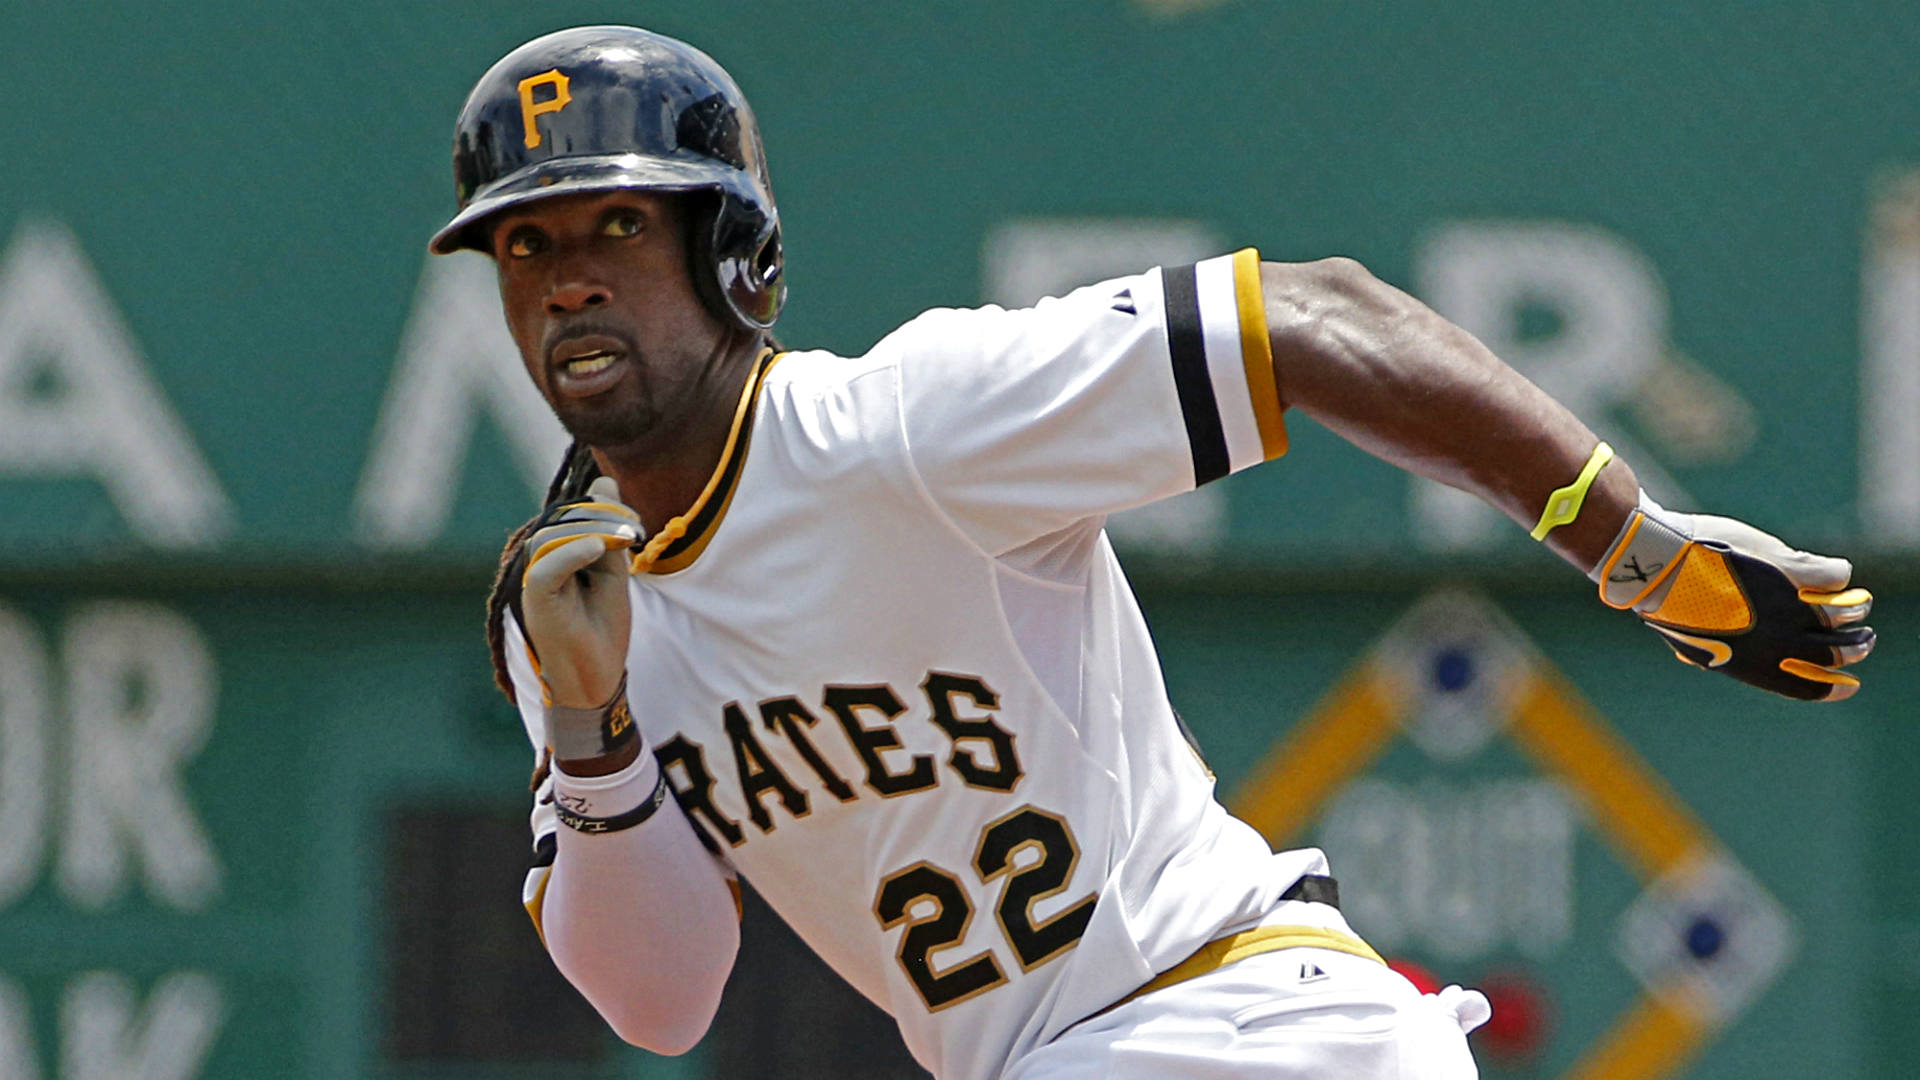 Outfield rankings: McCutchen making run at top spot